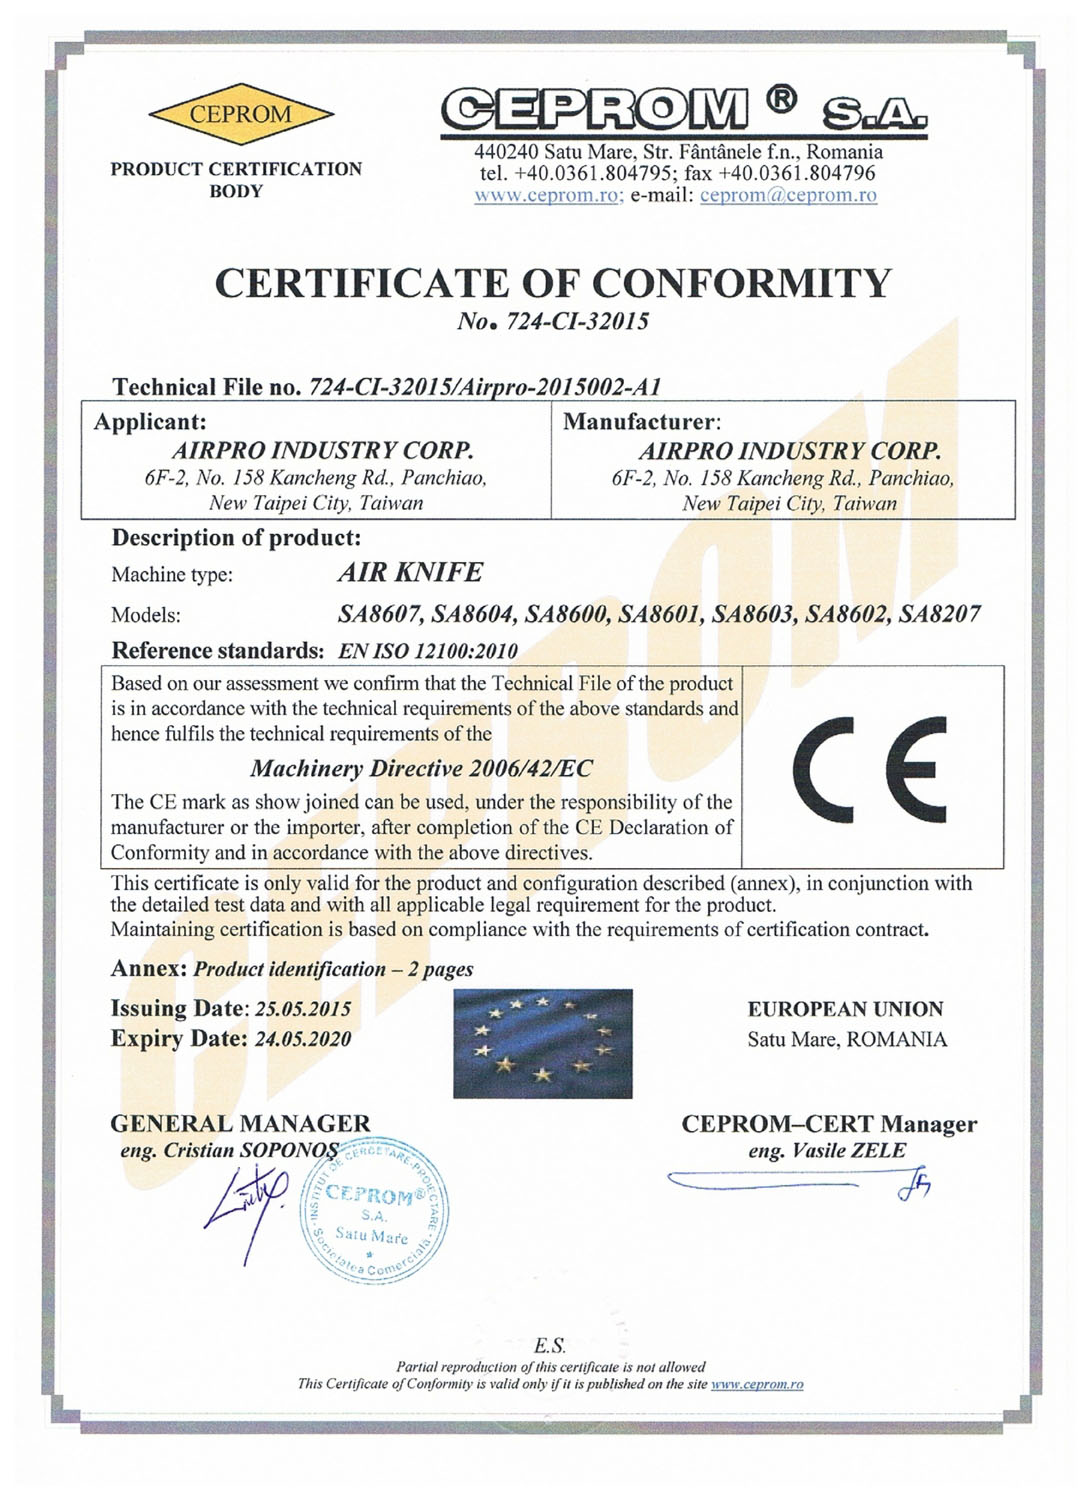 CERTIFICATE OF CONFORMITY-AIR KNIFE